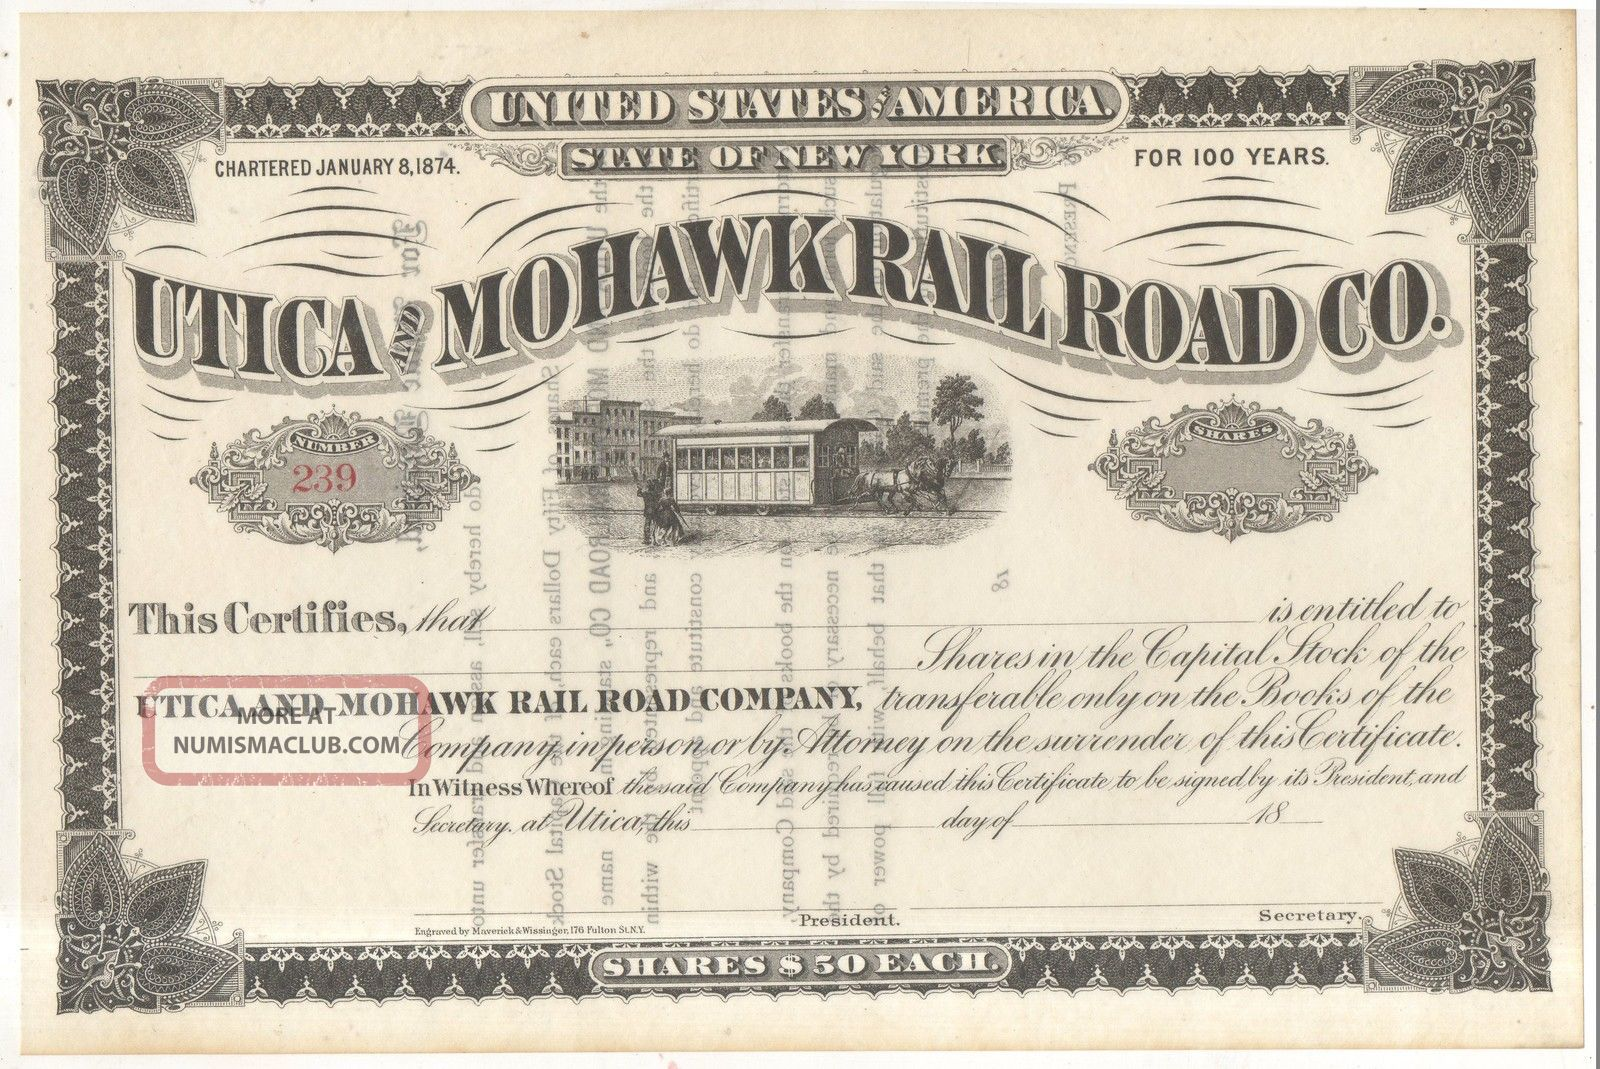 Utica And Mohawk Railroad Co Trolley Horse Car Ny York Stock Certificate Transportation photo